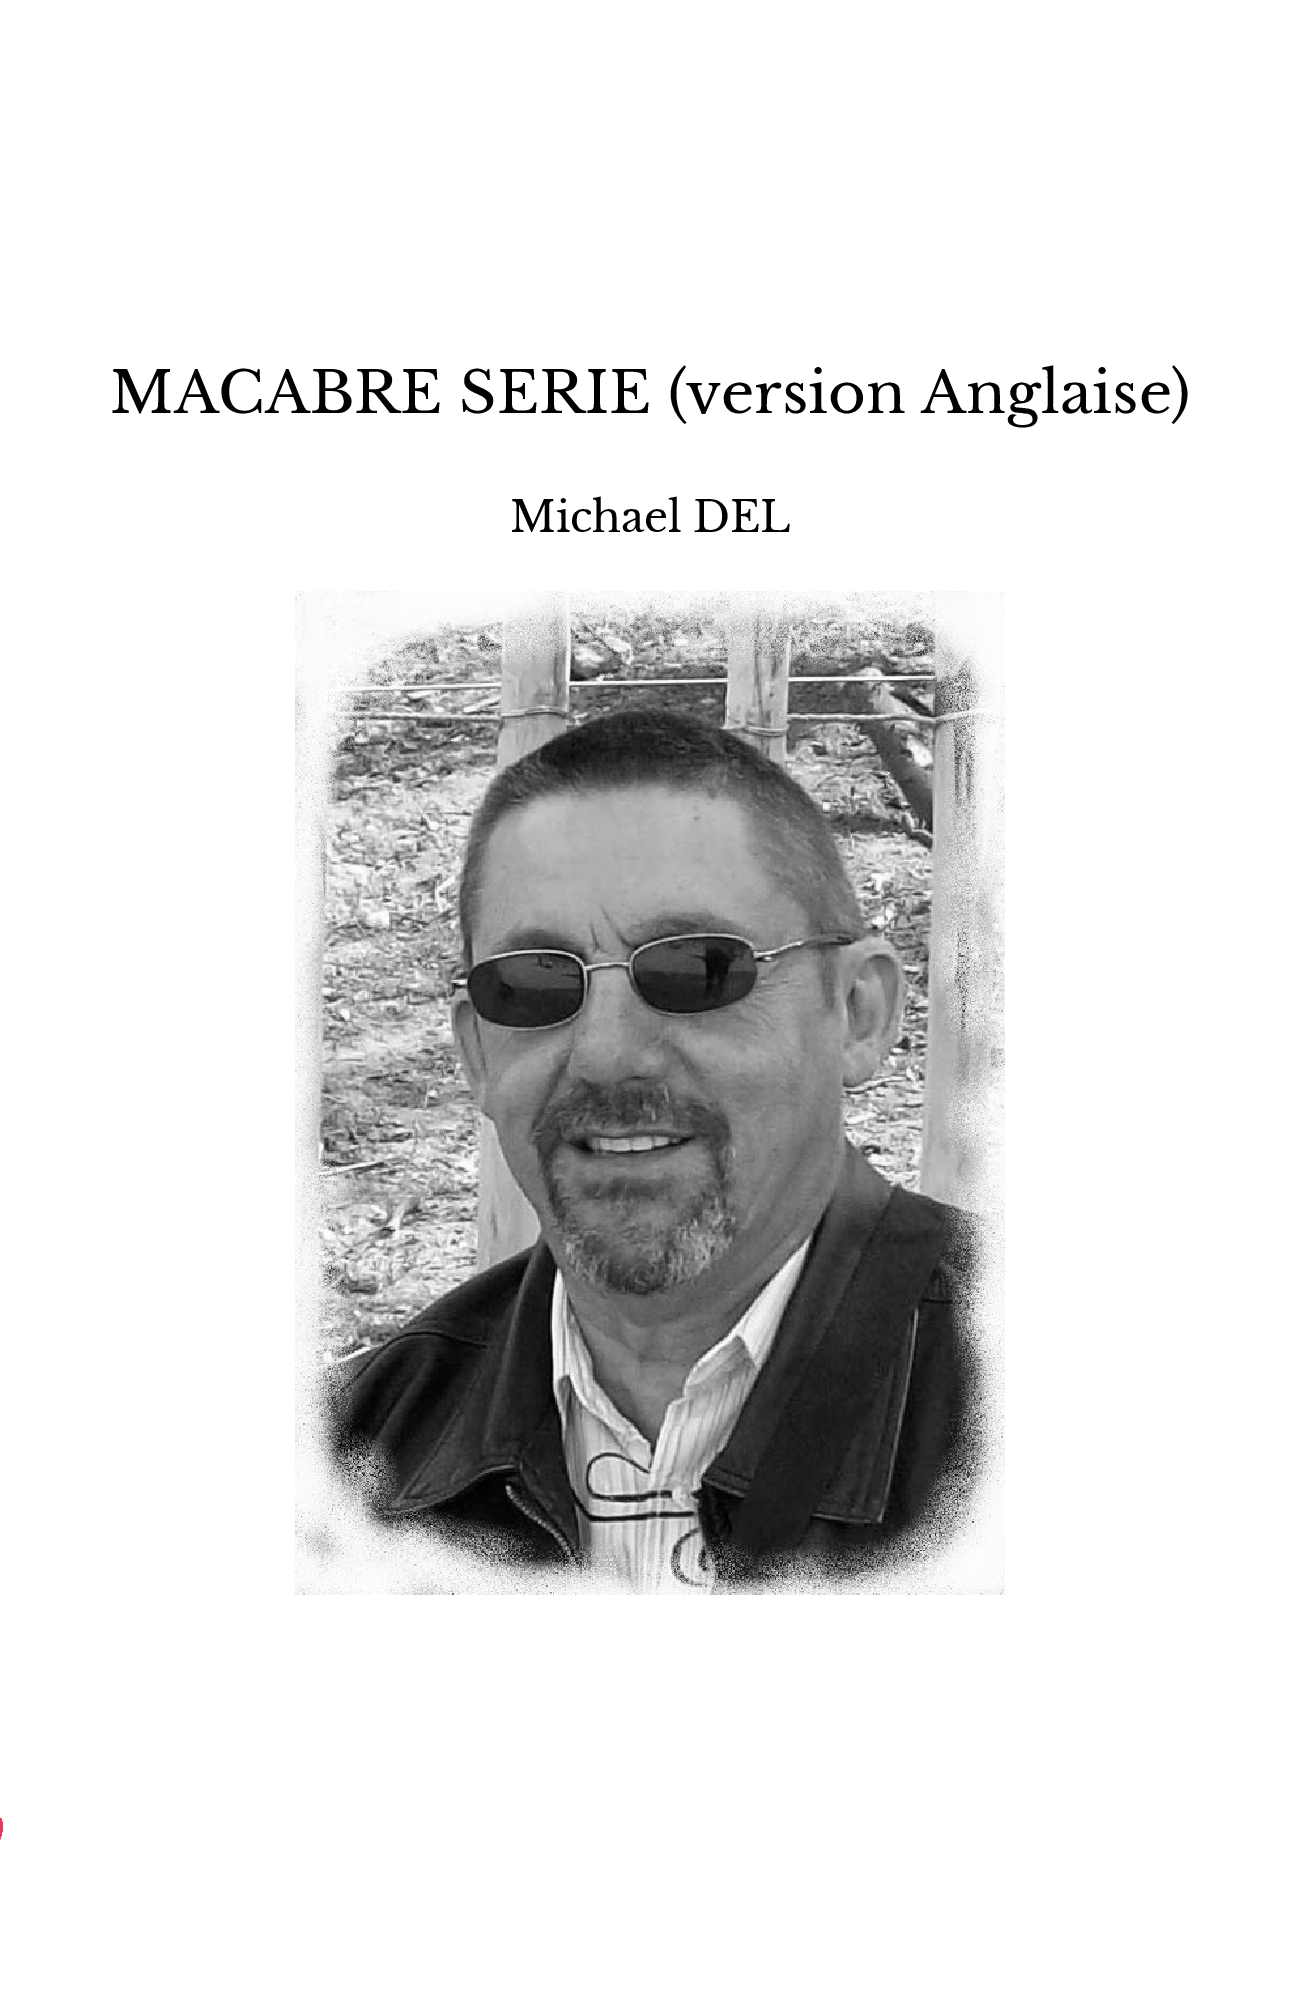 MACABRE SERIE (version Anglaise)